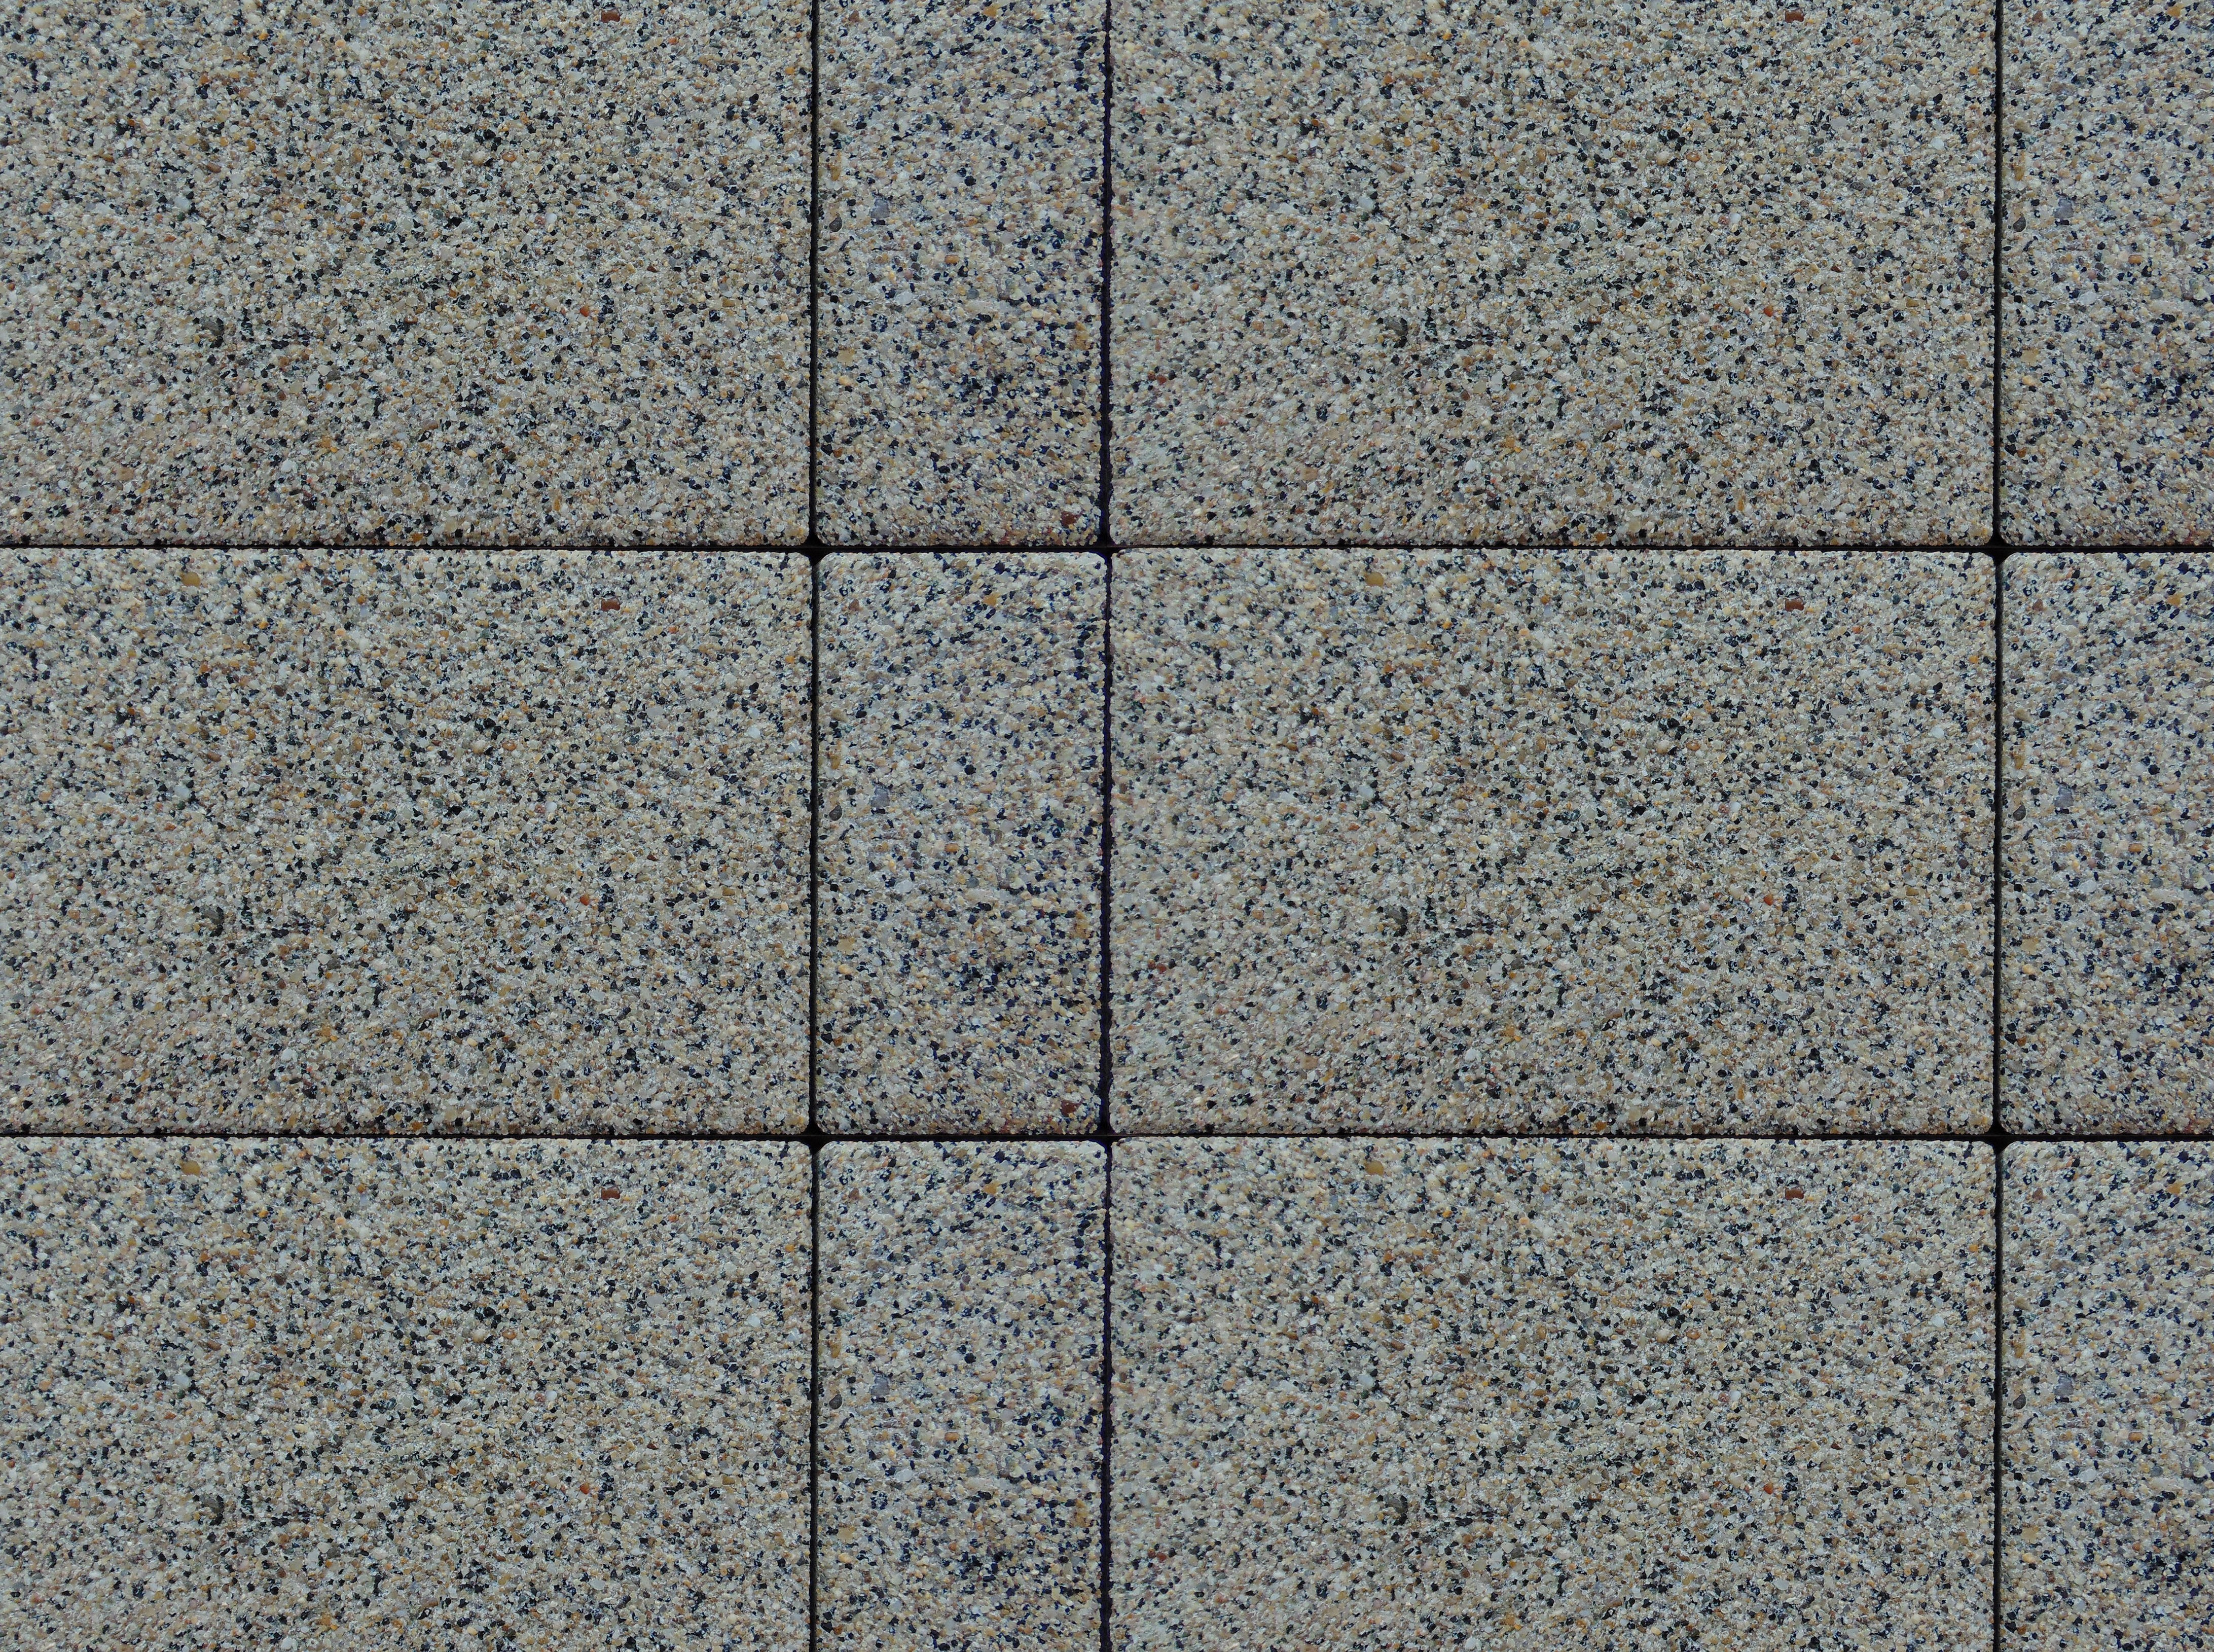 discover textures | Seamless Pavement Texture Consisting Of ...